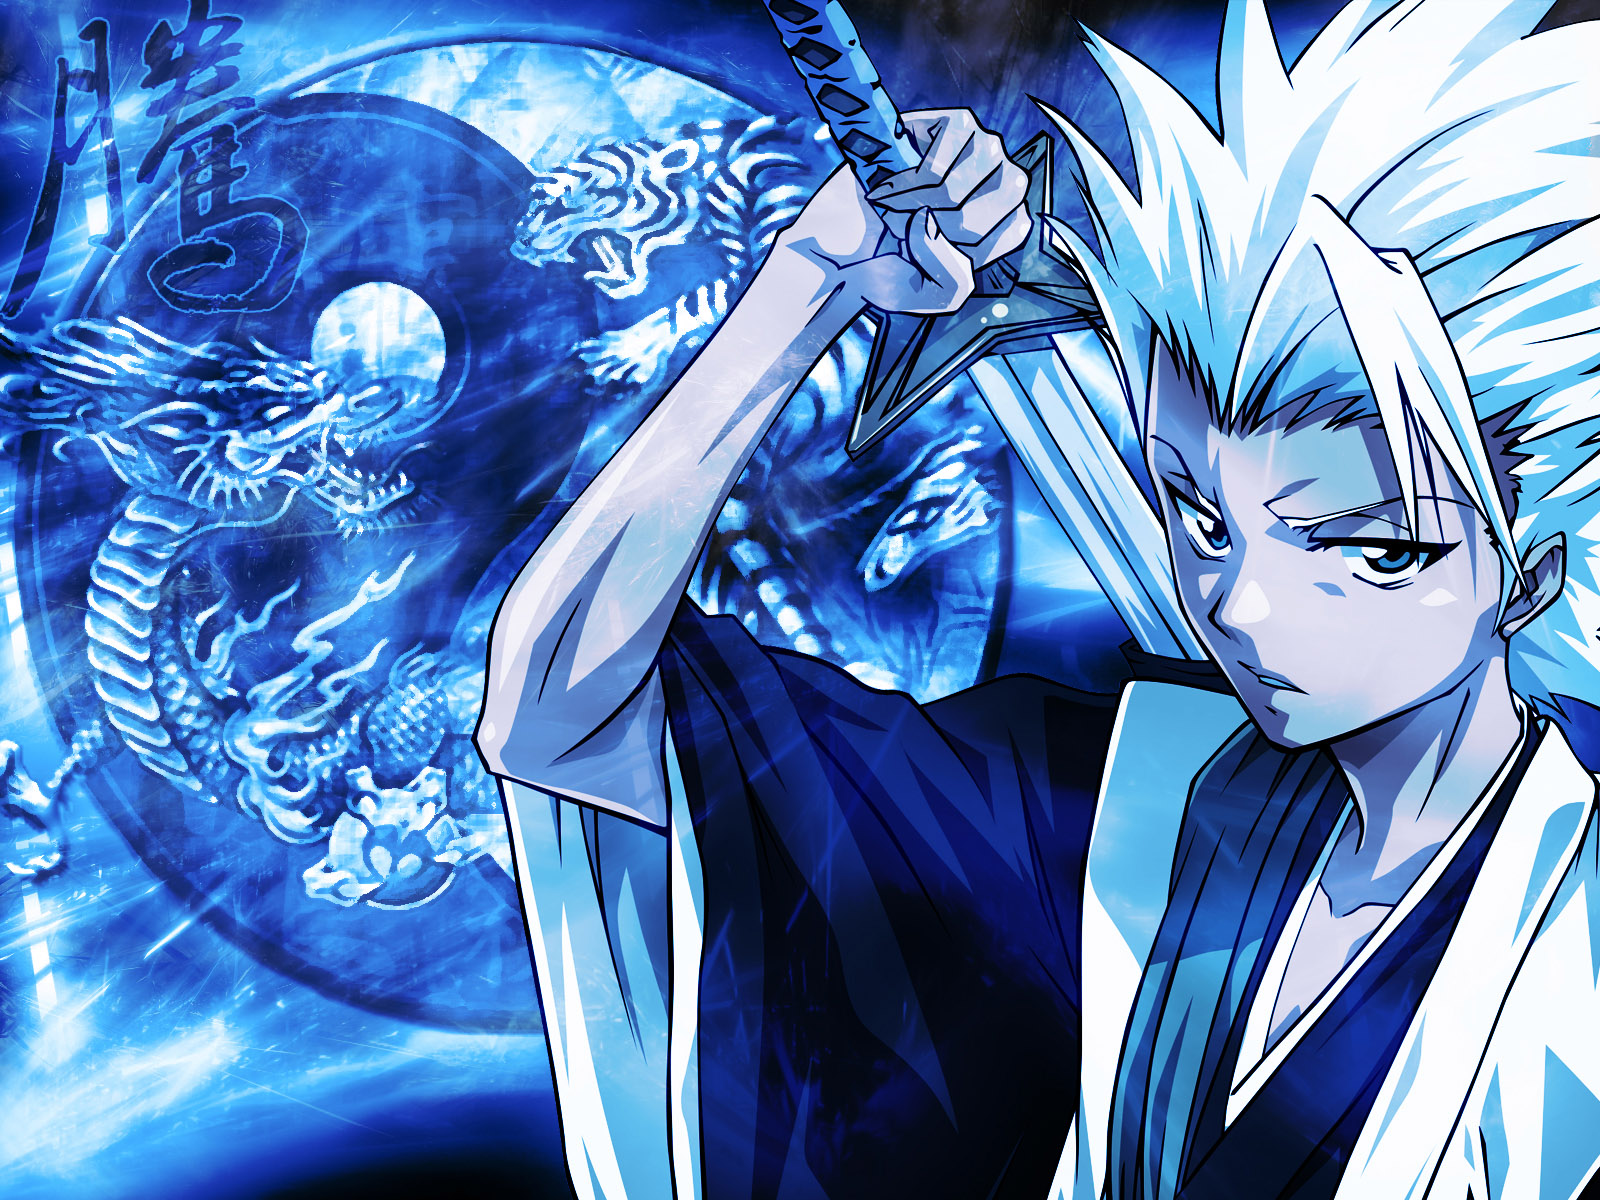 Bleach Anime Wallpapers Hitsugaya Toushirou Wallpapers 1600x1200